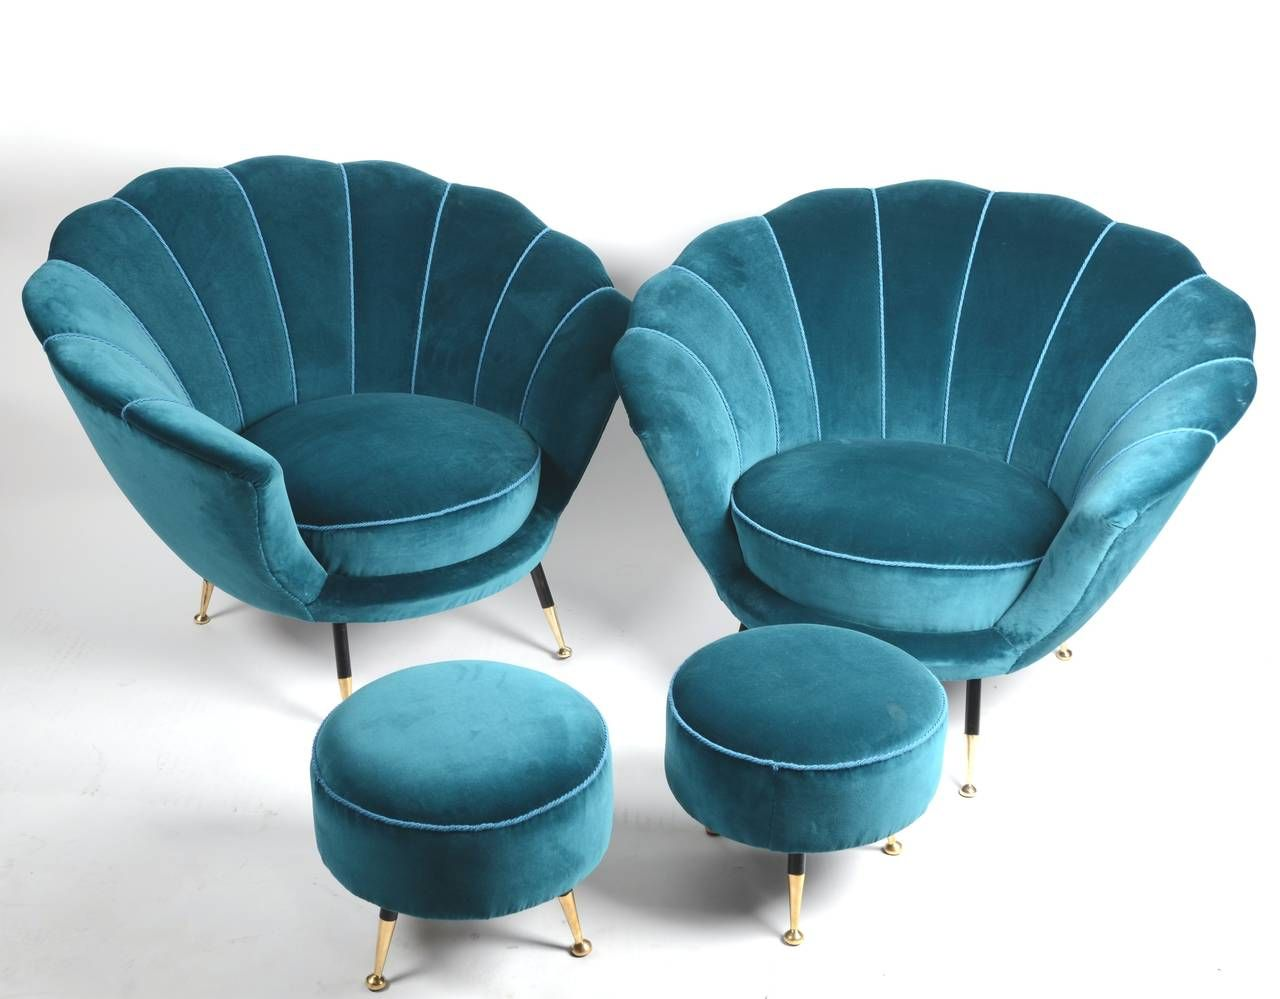 Pair Of Easy Chairs With Stools Italian 1950s In The Style Ico Parisi